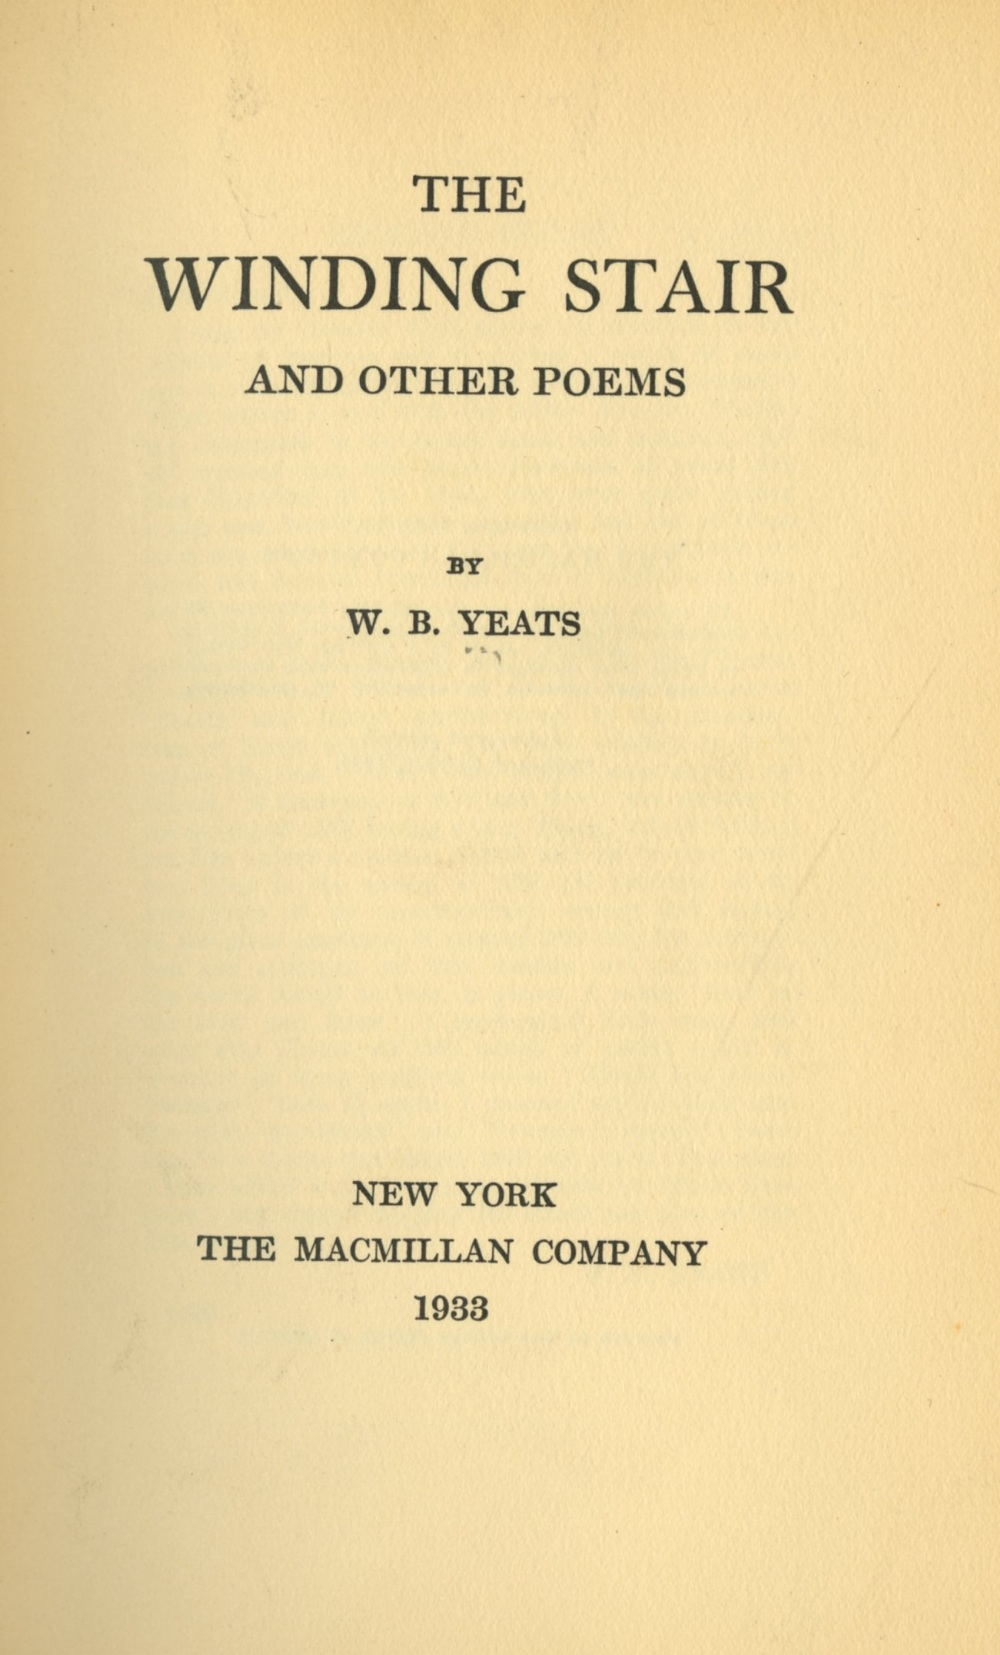 Yeats (W.B.) The Winding Stair and Other Poems, 8vo L. (Mac Millan & Co.) 1933, First English Edn.